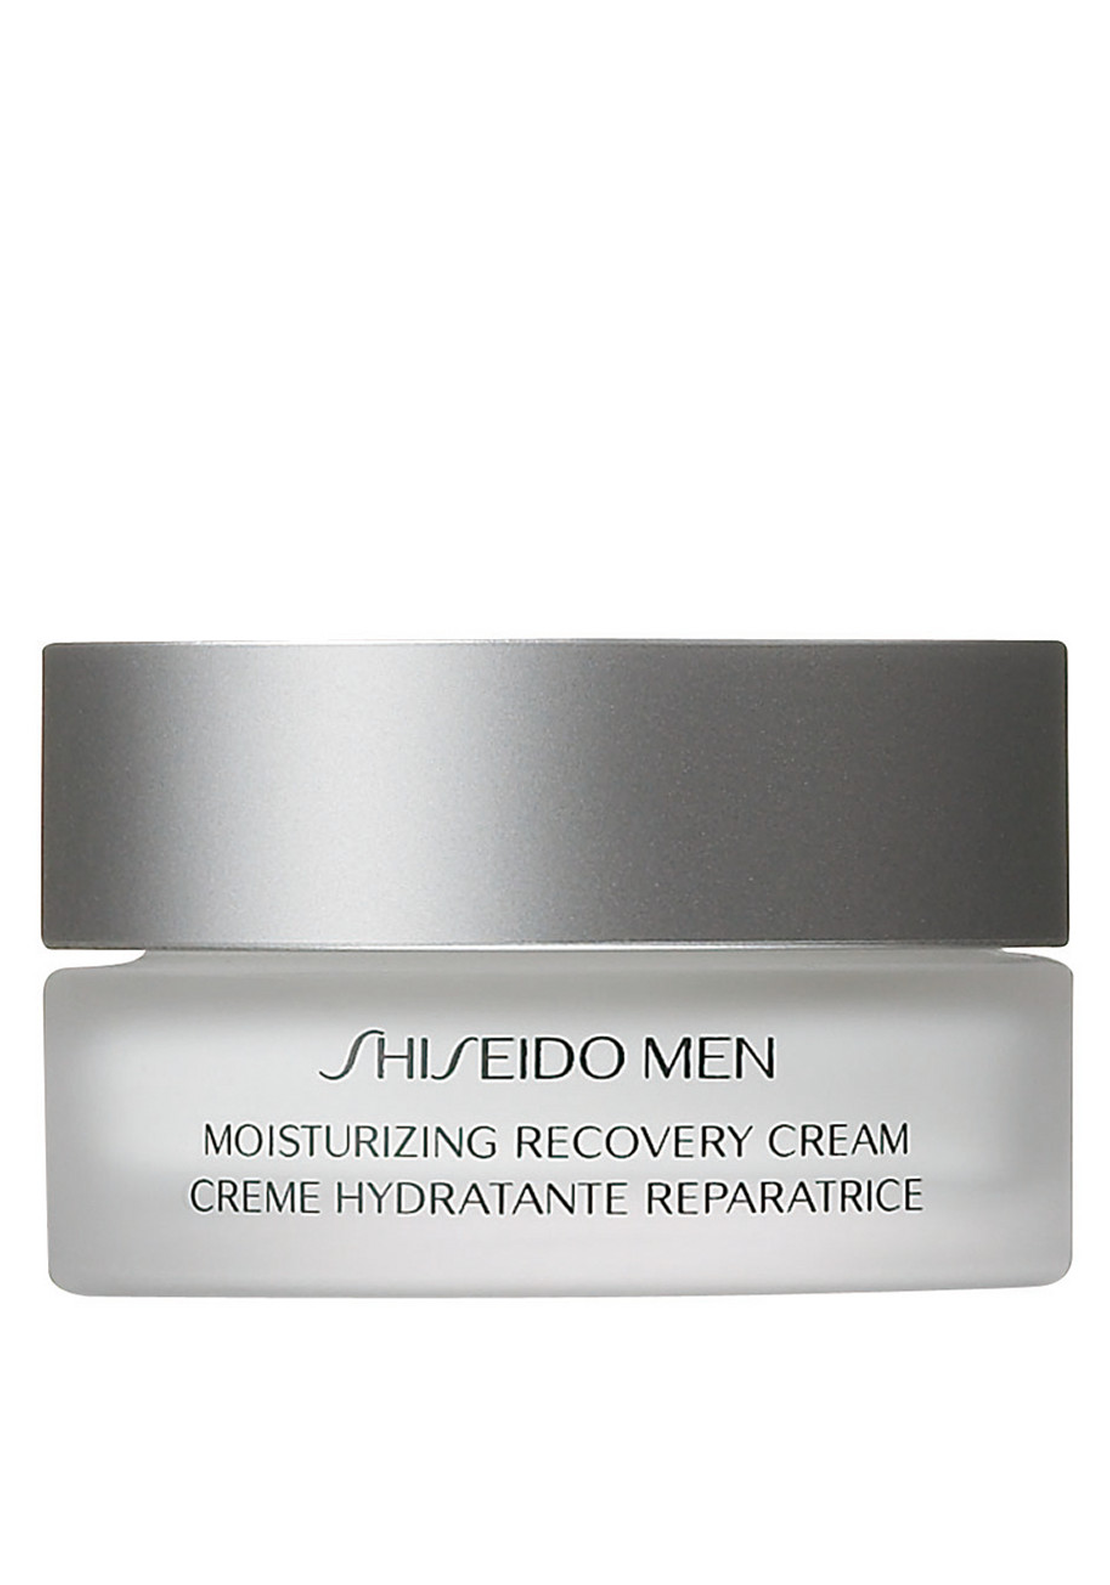 Shiseido Moisturizing Recovery Cream for Men, 50ml